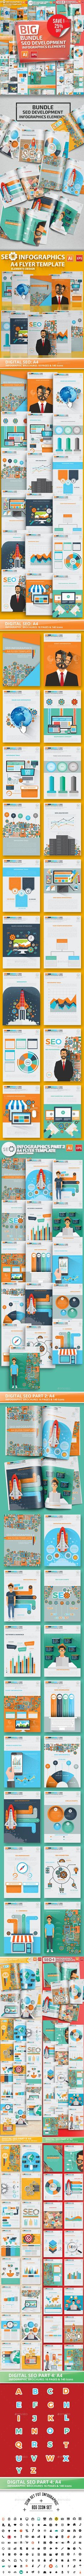 Bundle SEO Development Infographics — Vector EPS #seo icons #seo tools • Download ➝ https://graphicriver.net/item/bundle-seo-development-infographics/20003239?ref=rabosch